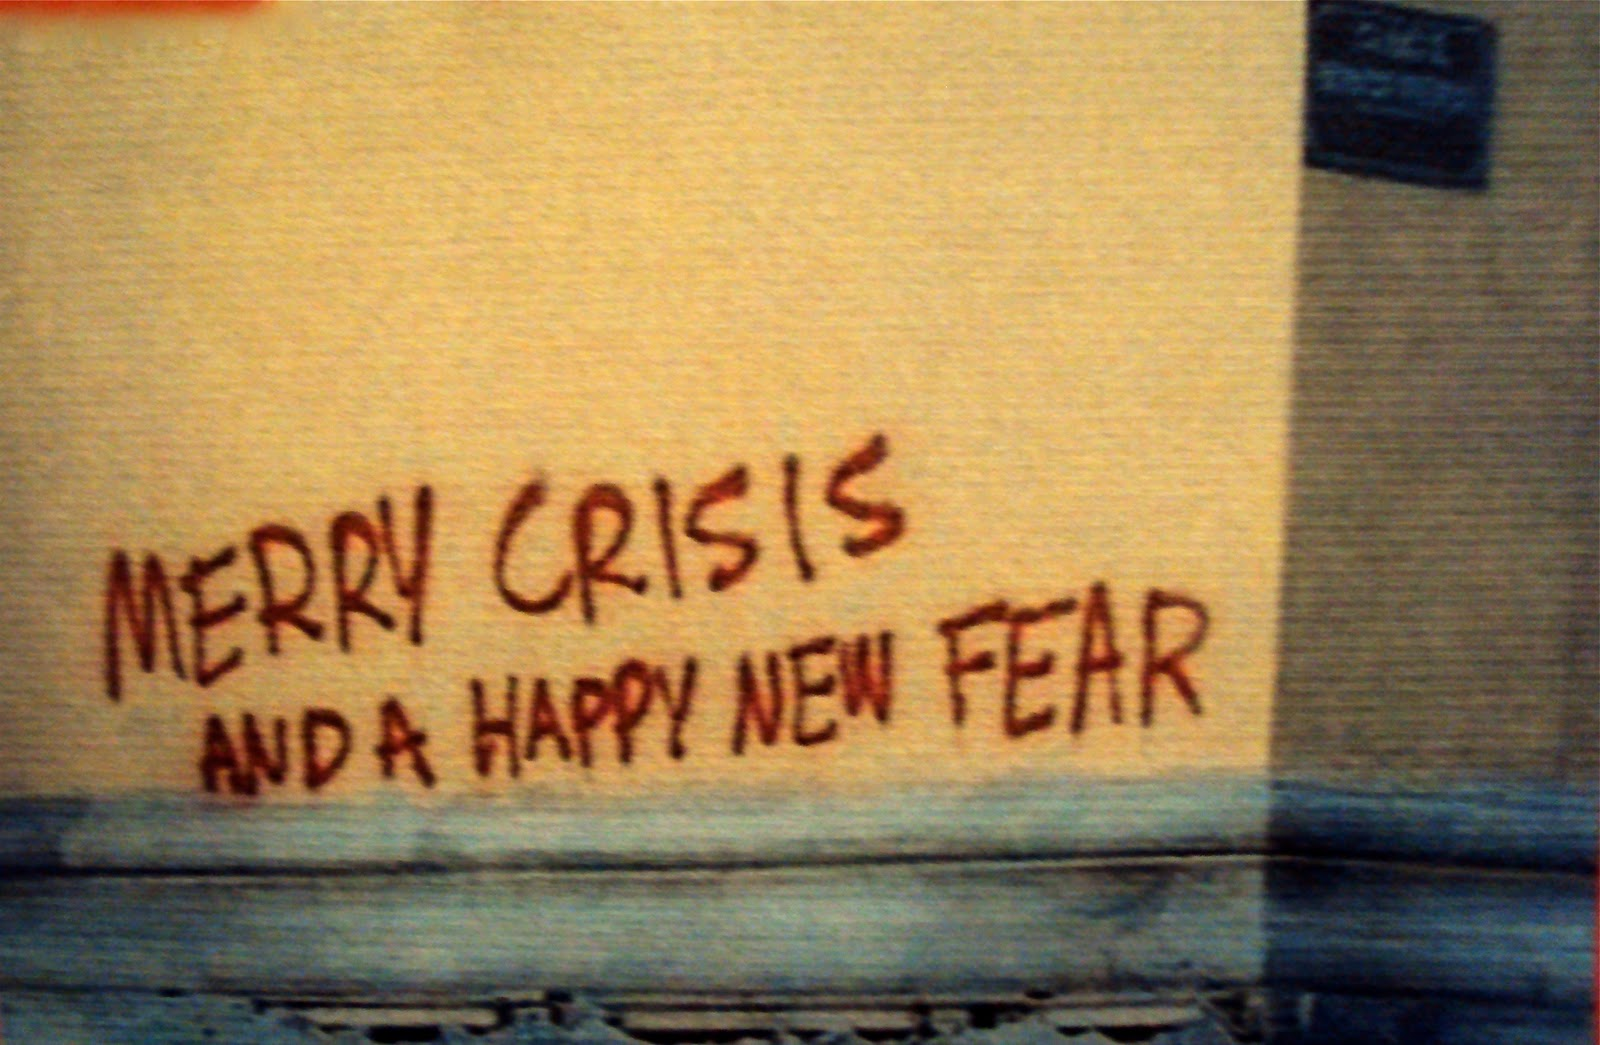 merry-crisis-happy-new-fear